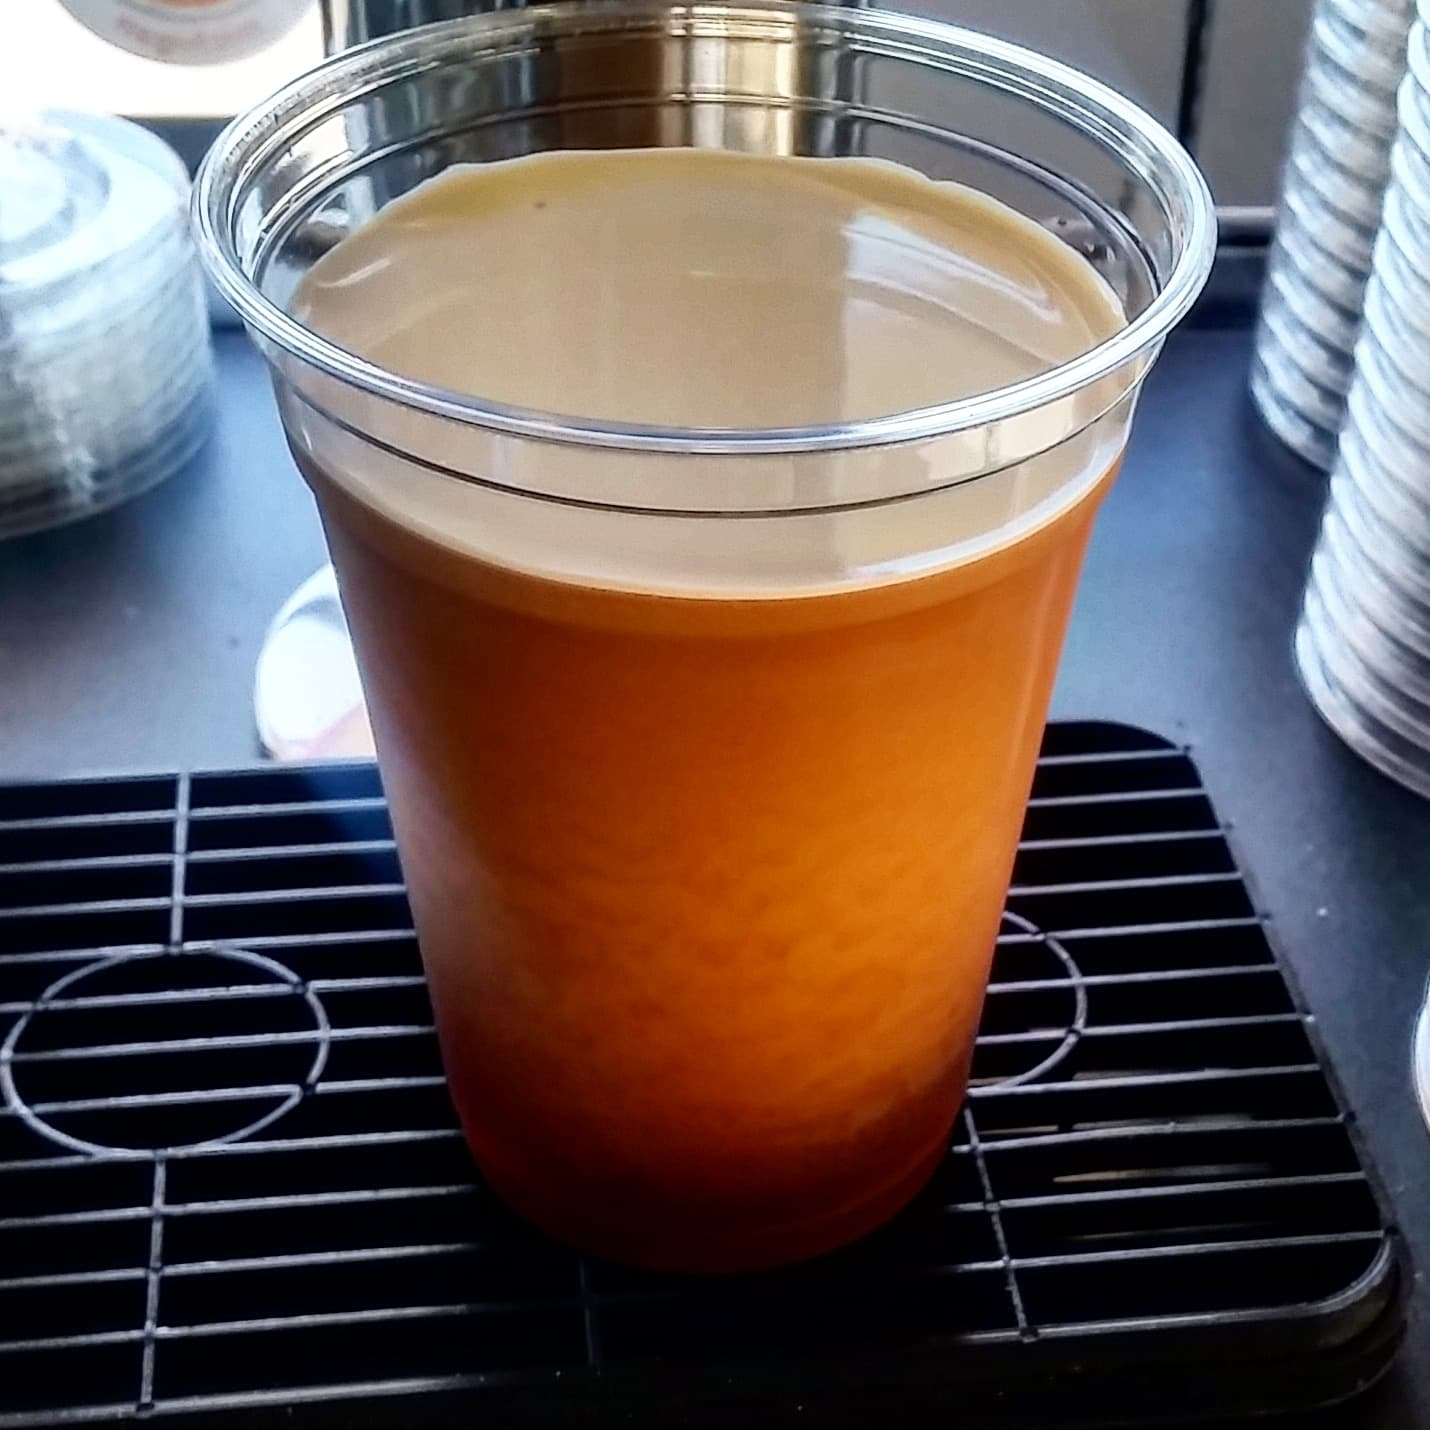 Nitro Cold Brew Coffee cascades out of the faucet with a smooth finish